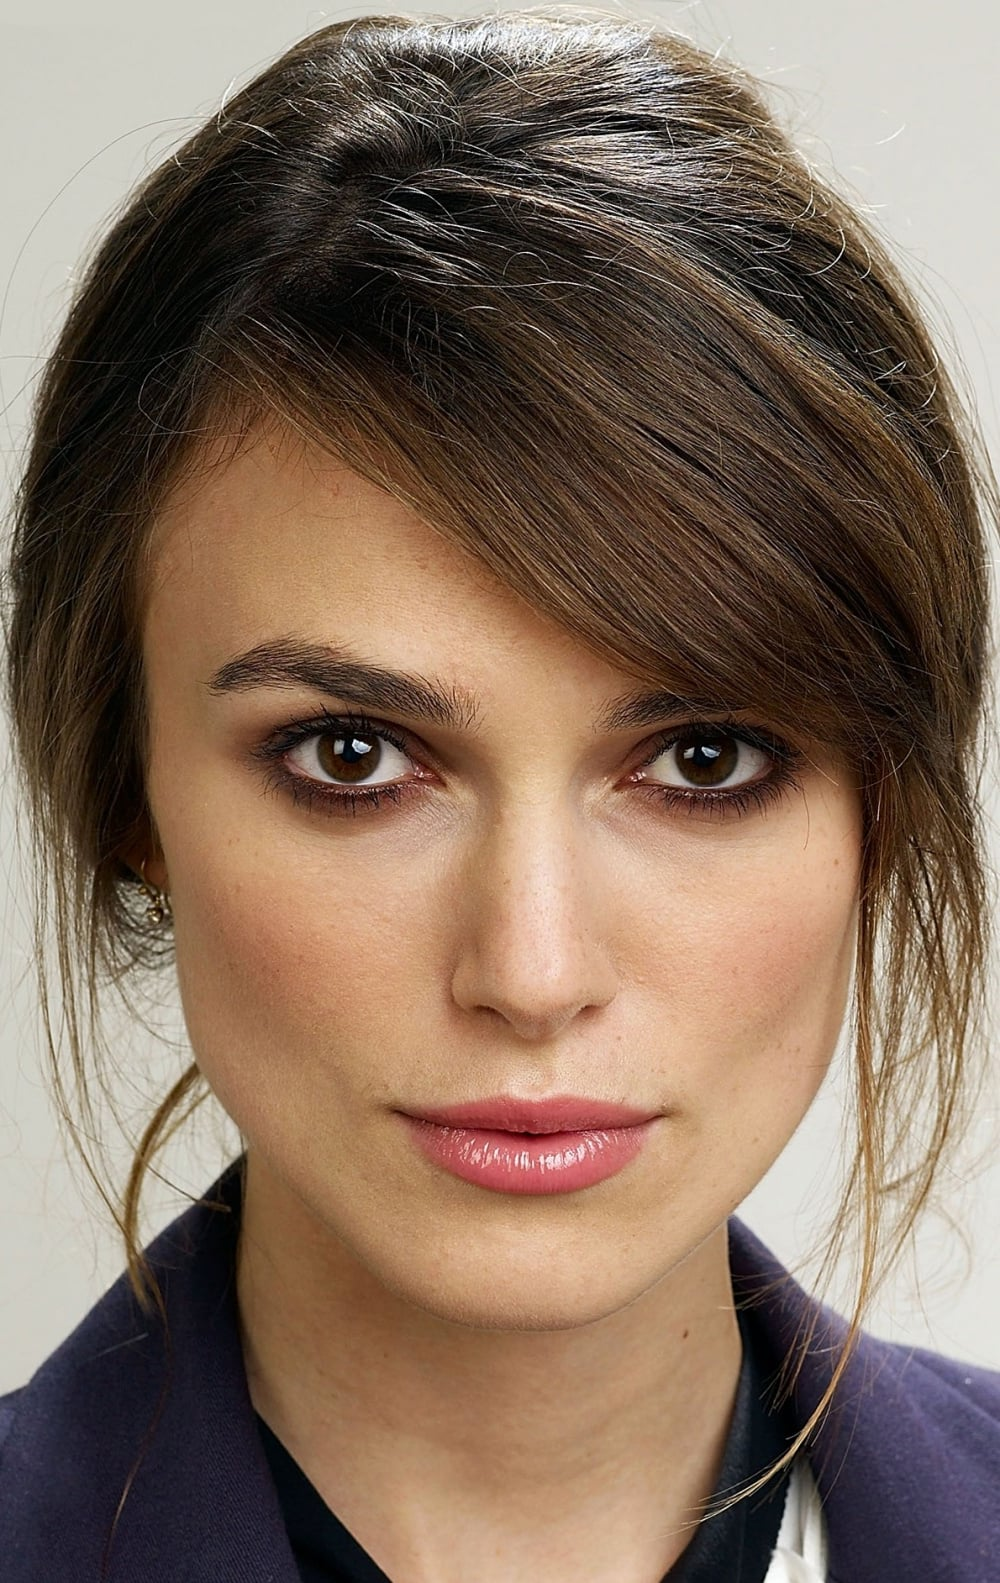 30+ Keira Knightley wallpapers HD Download Keira Knightley